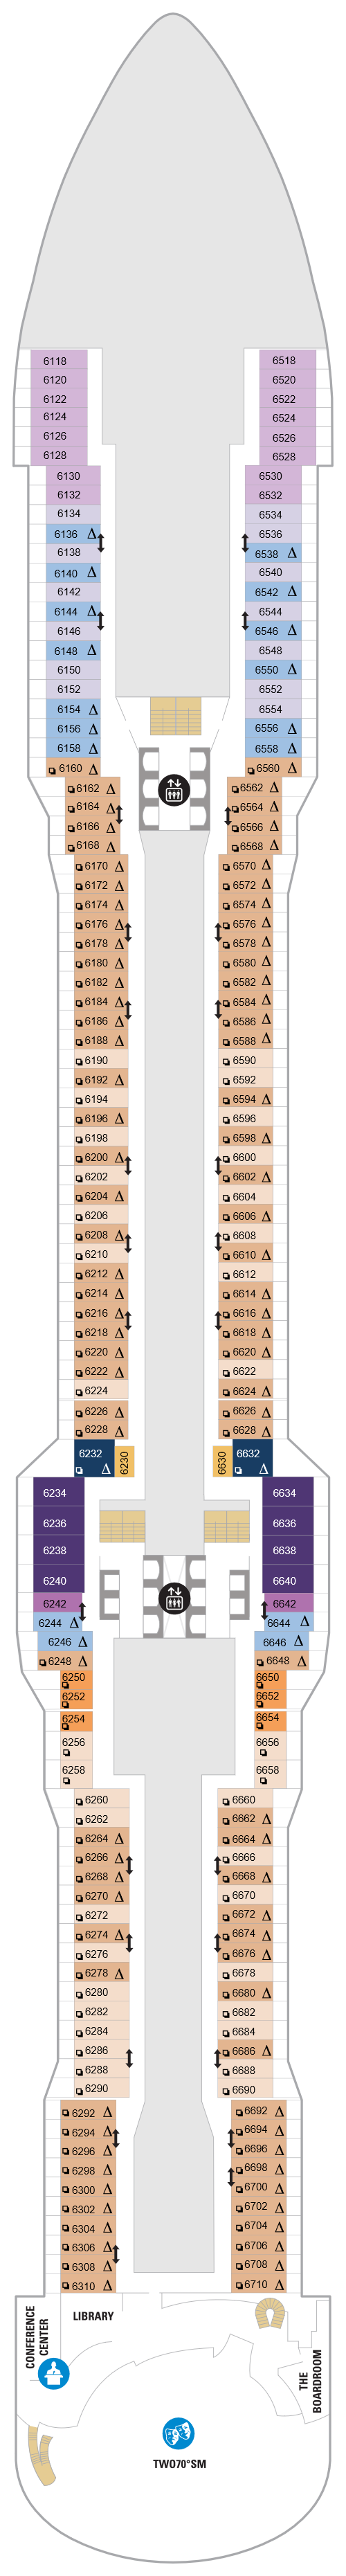 Spectrum Of The Seas Deck 6 layout